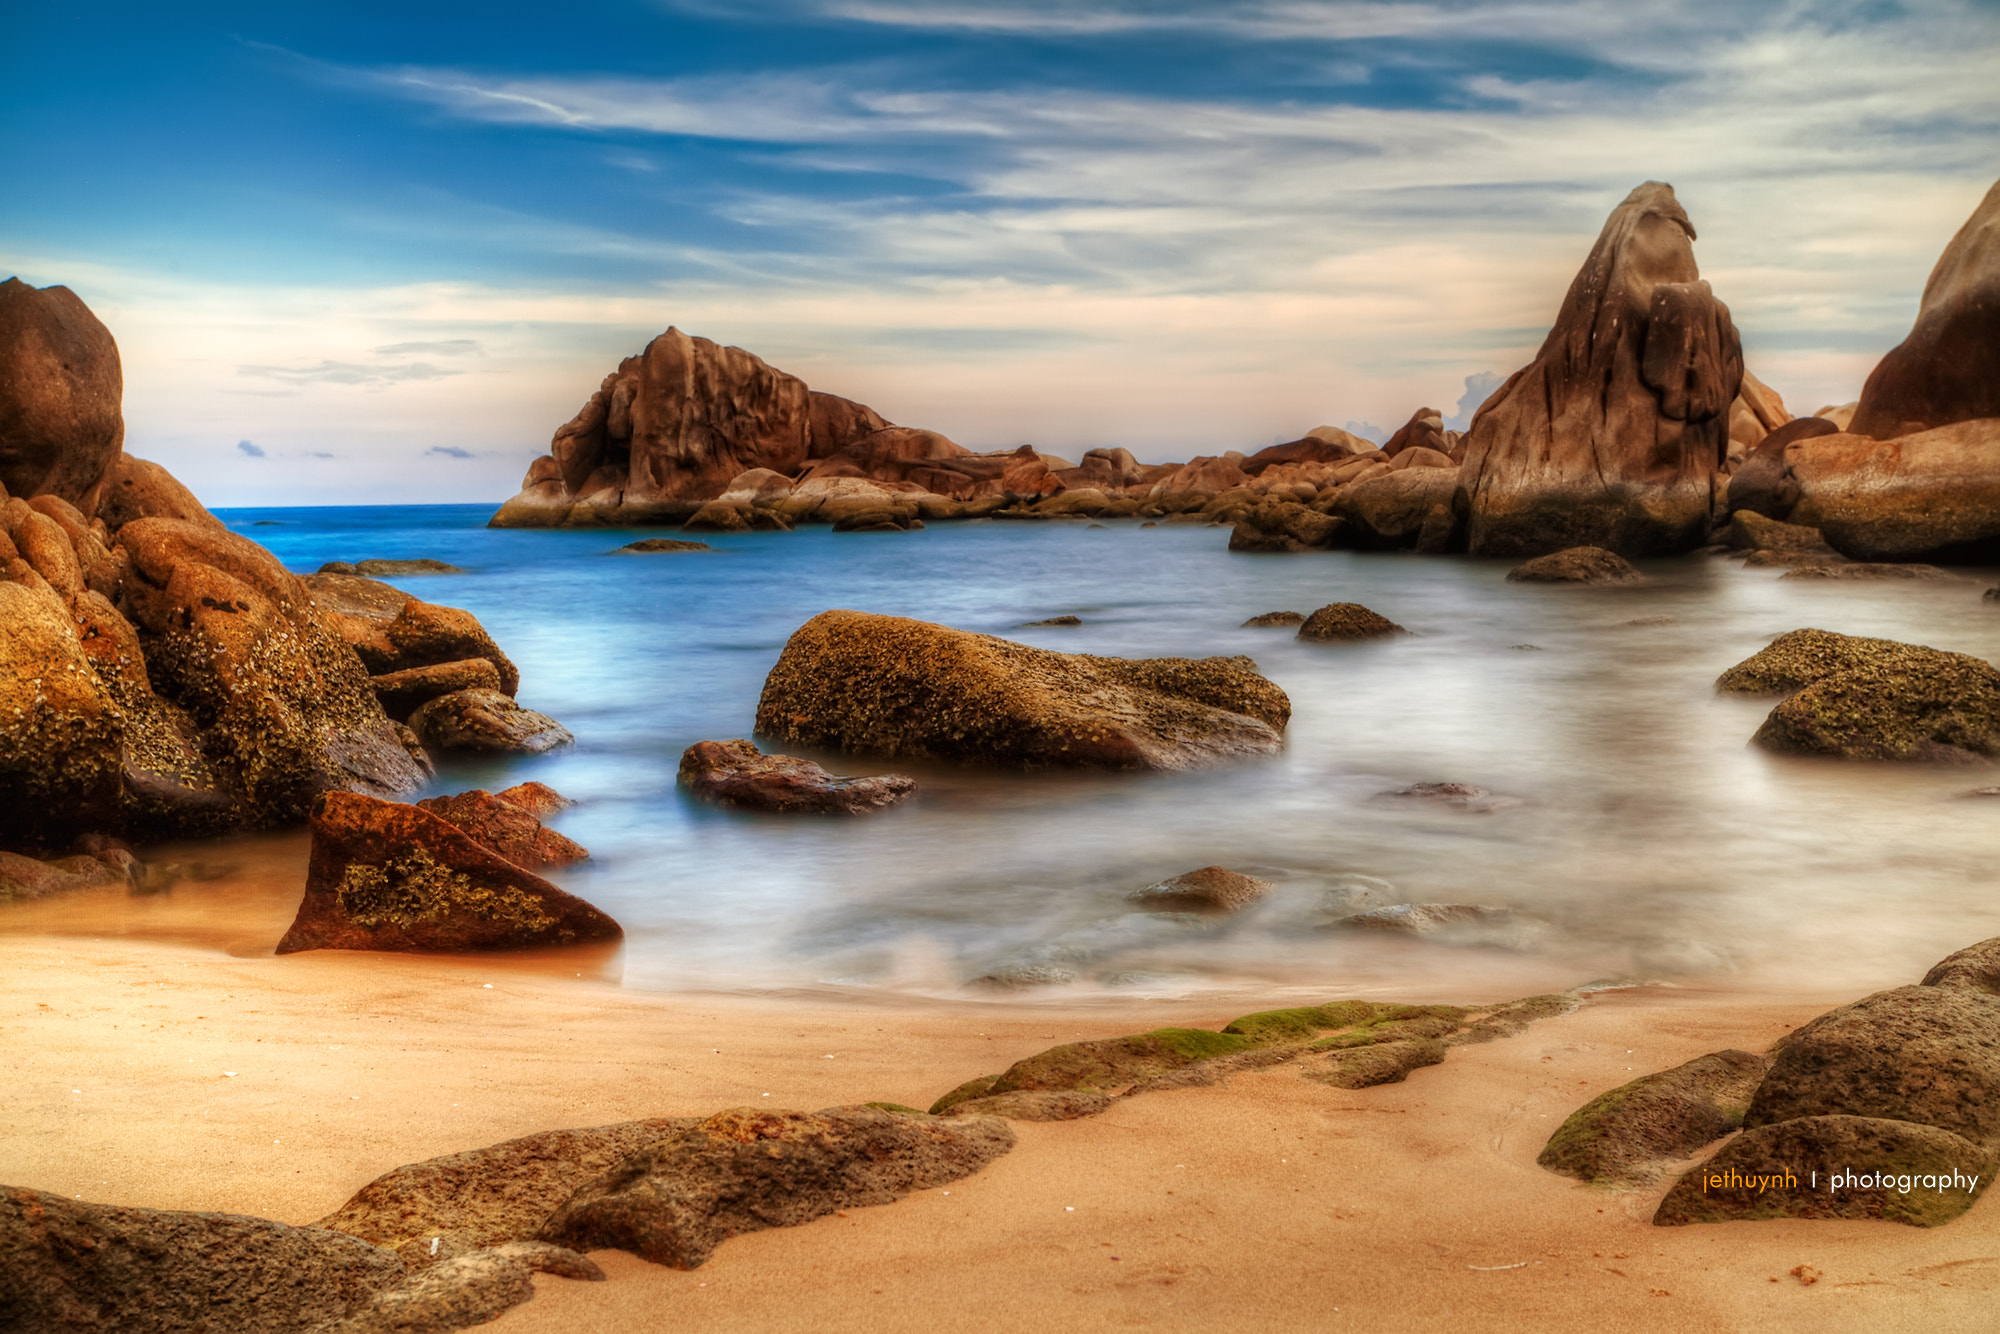 Photograph The Rock Water Bay by Jet Huynh on 500px